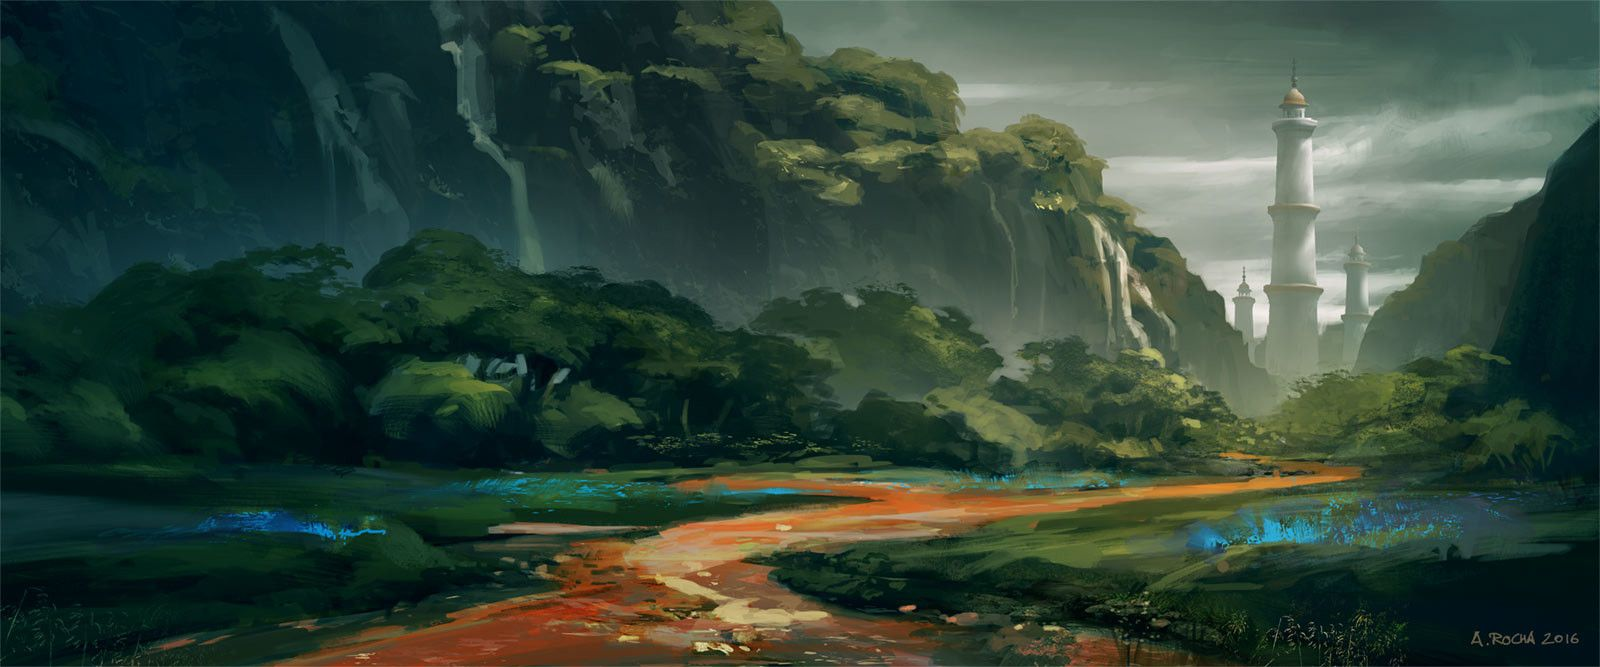 Winding River, Andreas Rocha on ArtStation at https://www.artstation.com/artwork/rWRwO